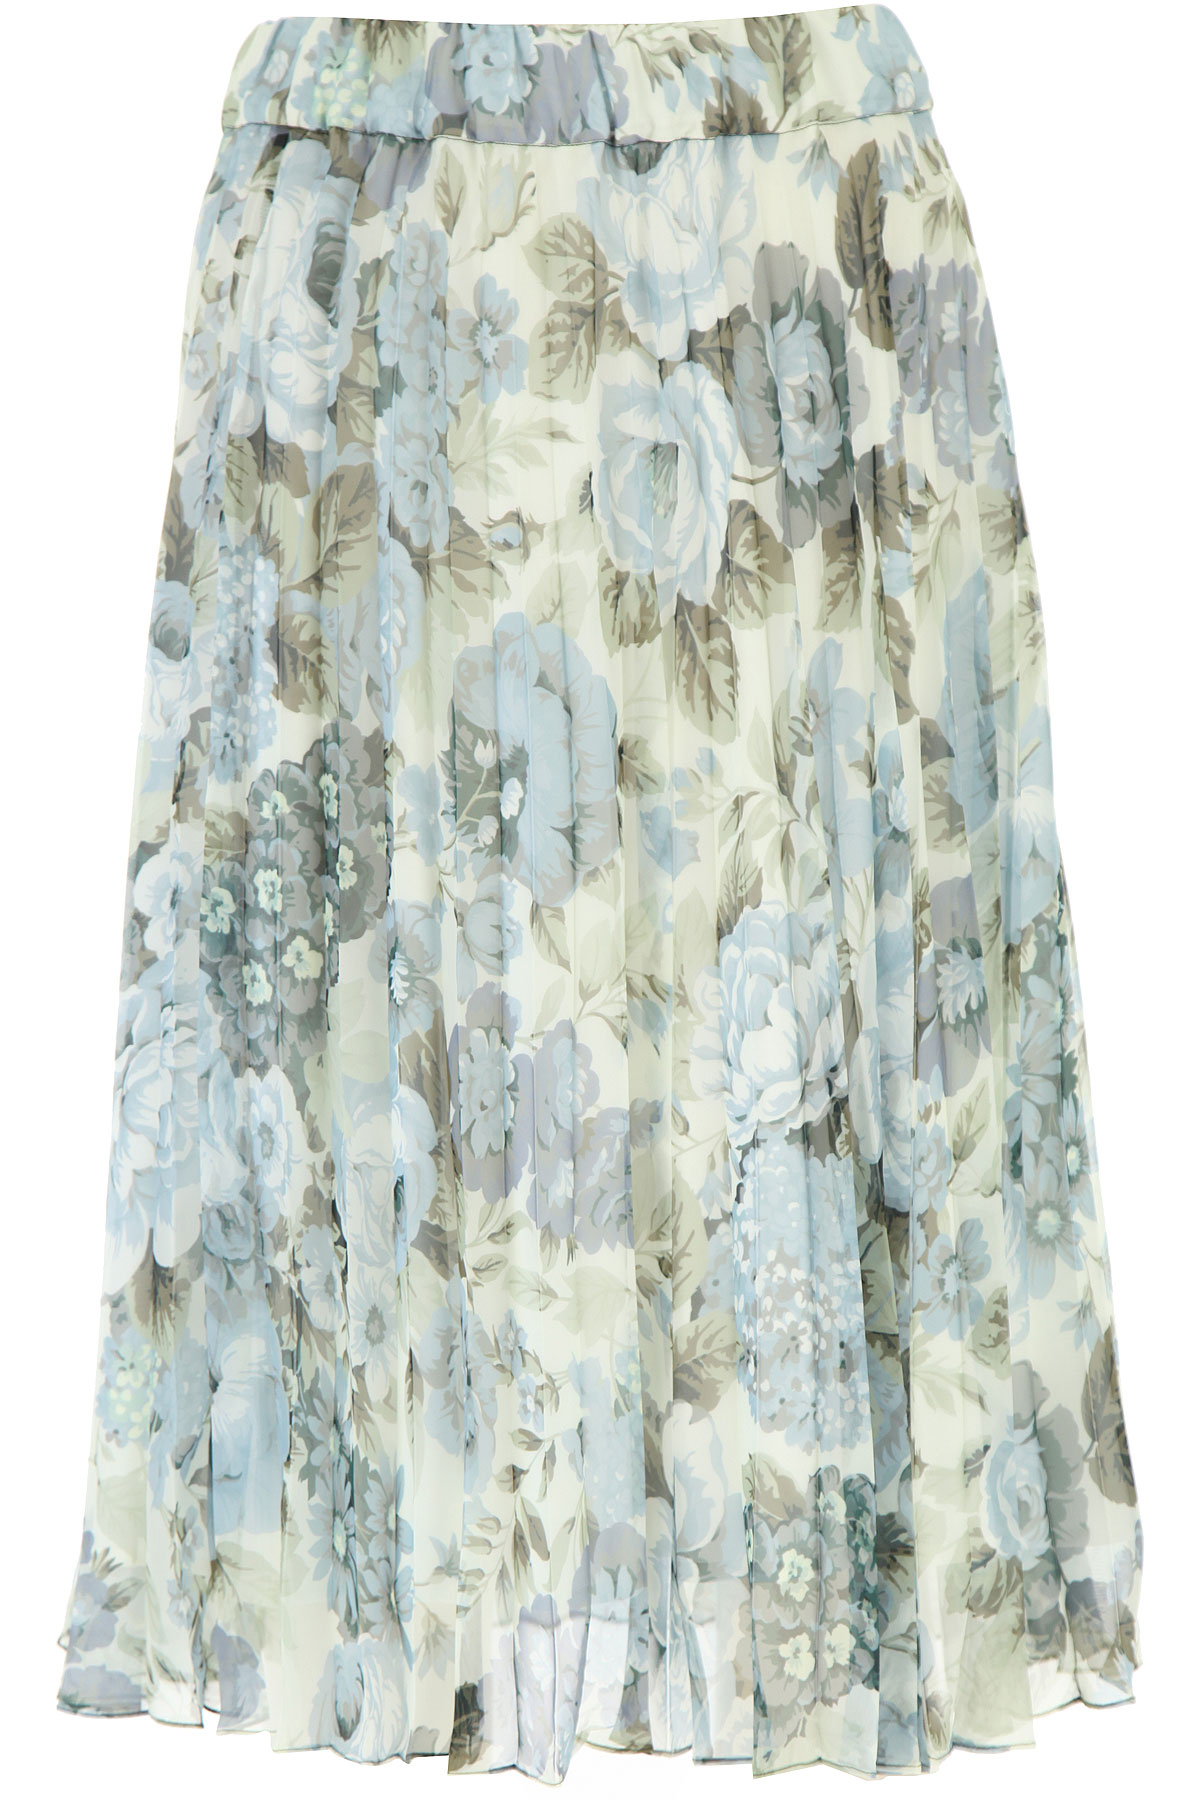 P.A.R.O.S.H. Skirt for Women On Sale, Blue, polyester, 2019, 6